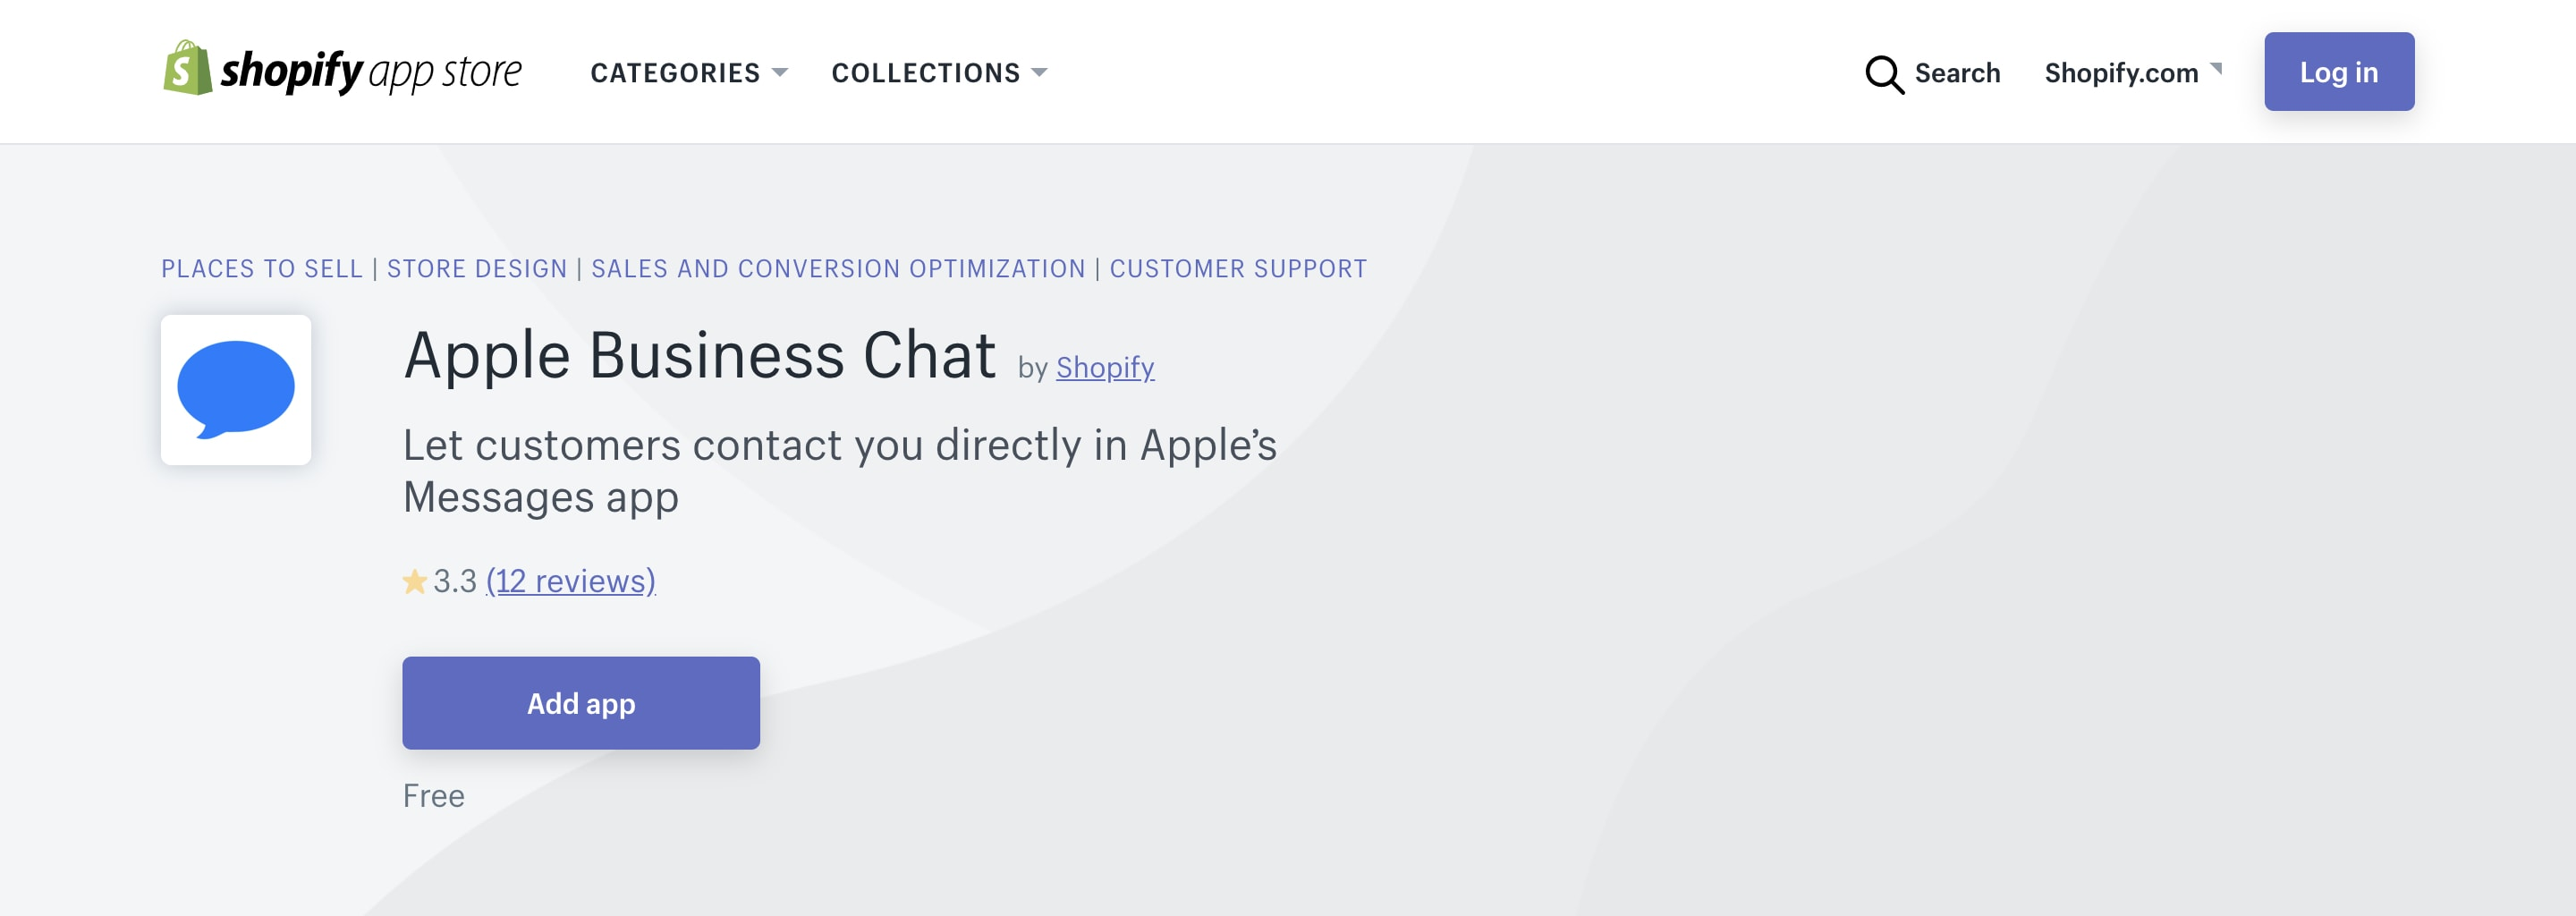 Shopify Apple Business Chat channel.